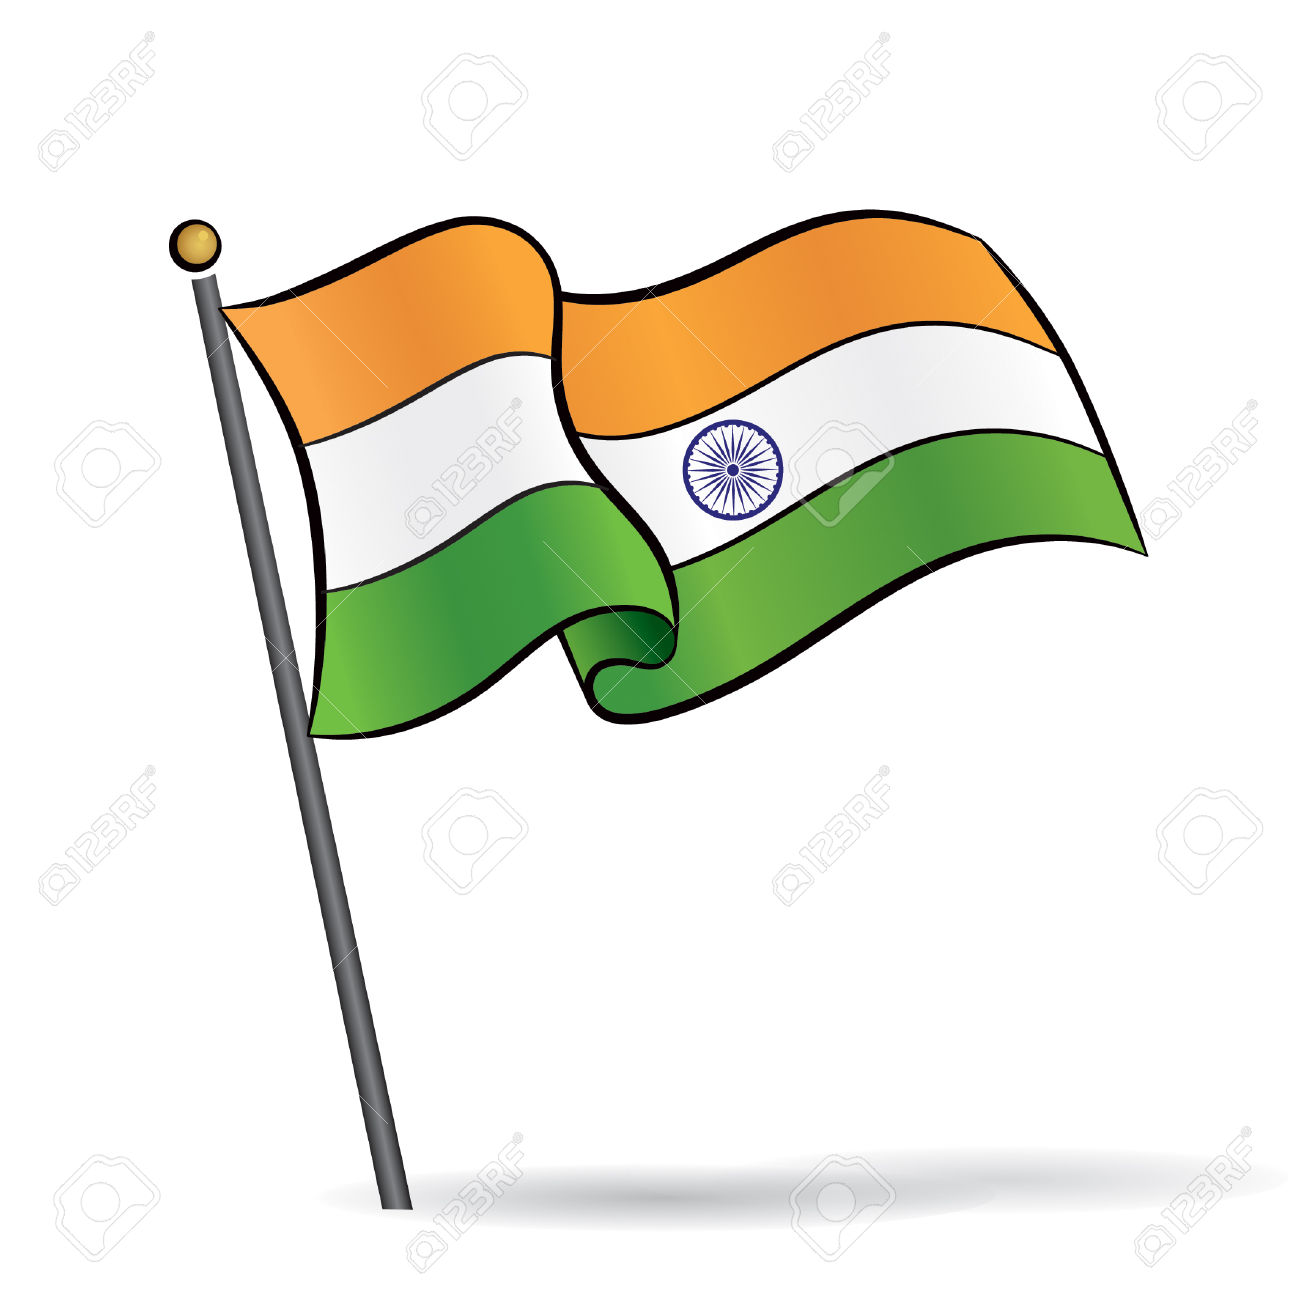 Indian flag clipart 5 » Clipart Station.